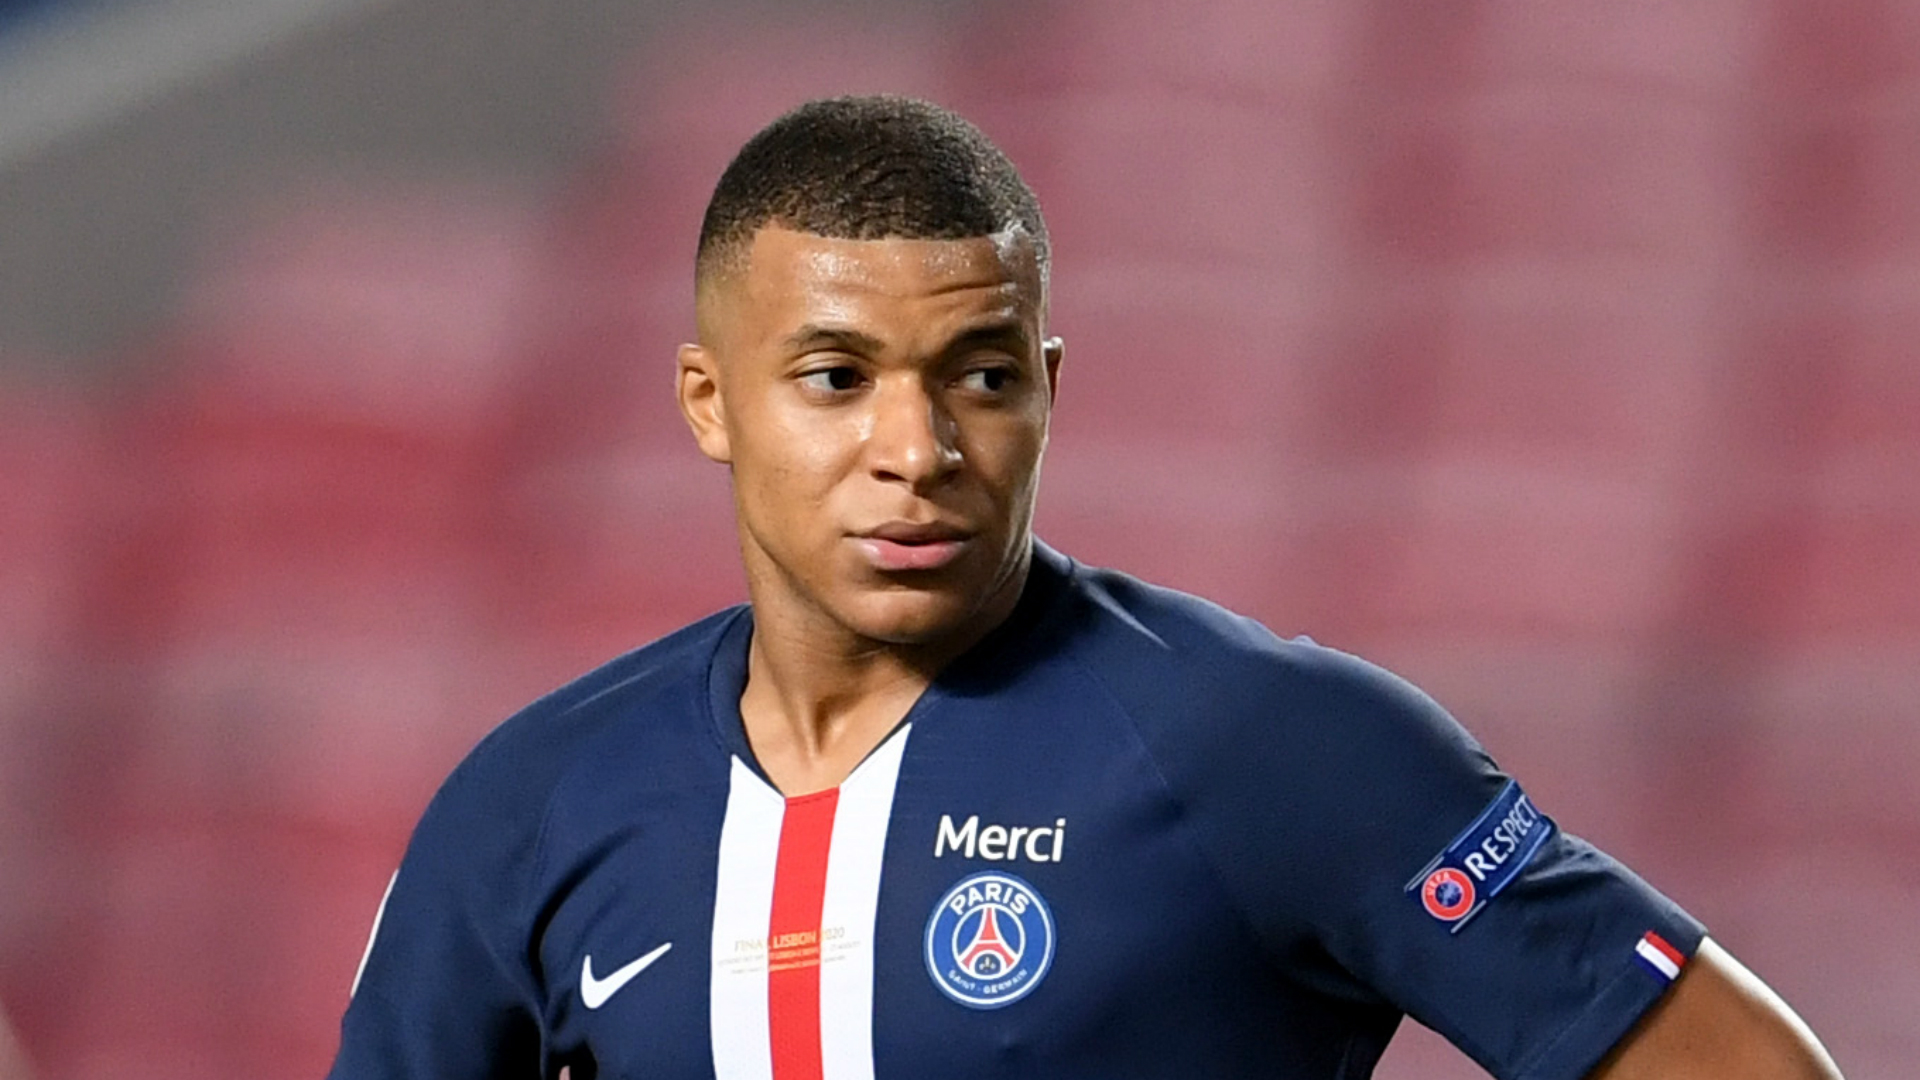 Mbappe to Real Madrid not financially feasible, says former president Calderon